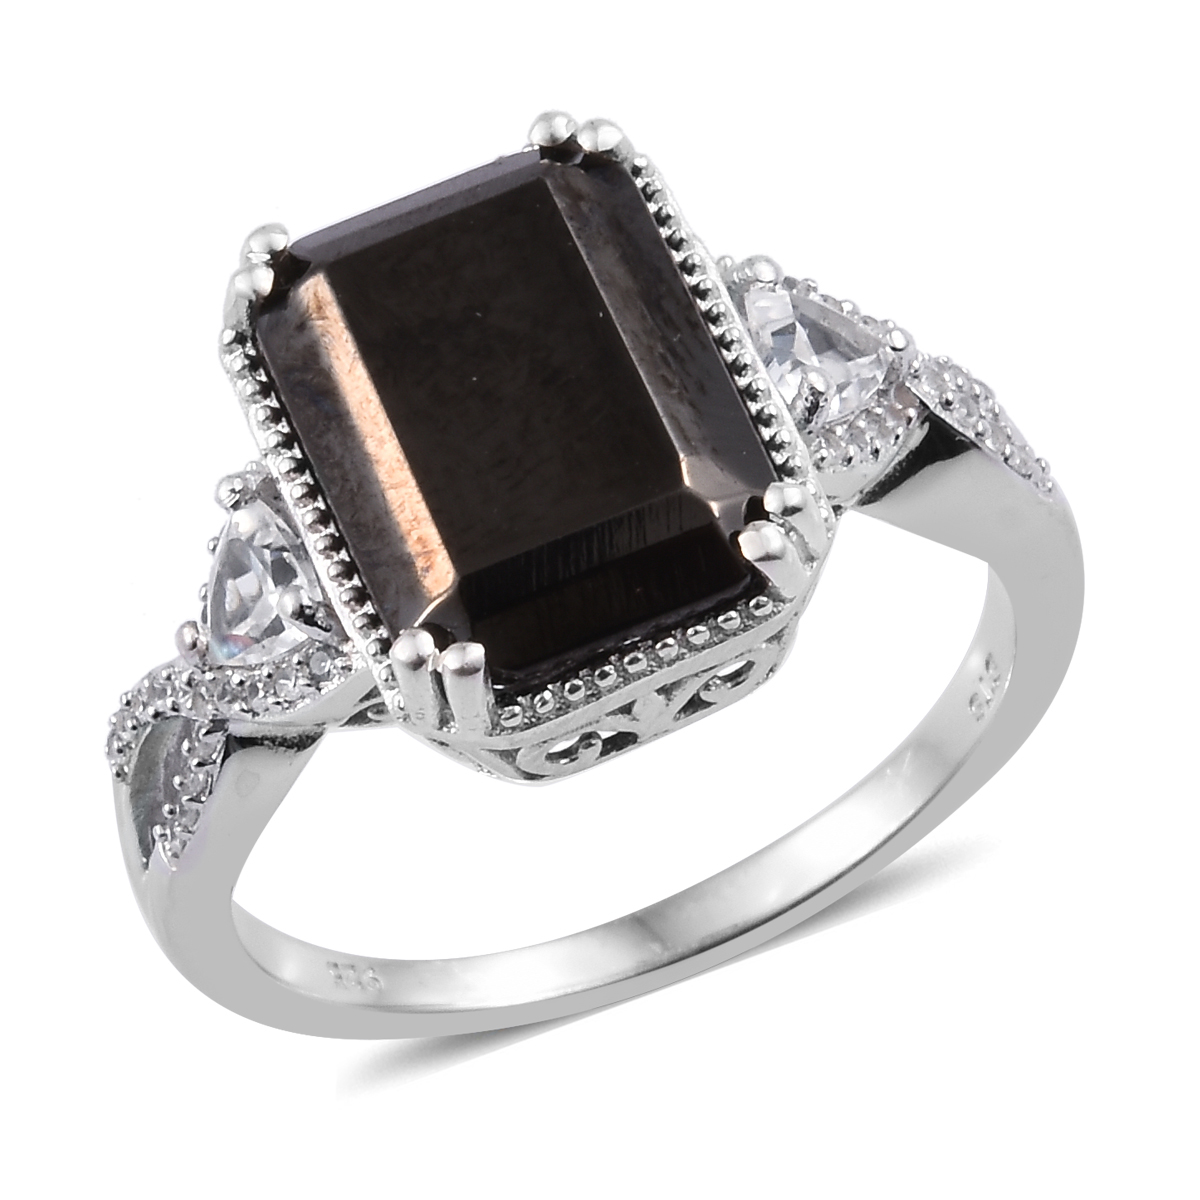 Silver Shungite, Zircon Ring in Platinum Over Sterling Silver (Size 9.0) 5.77 ctw